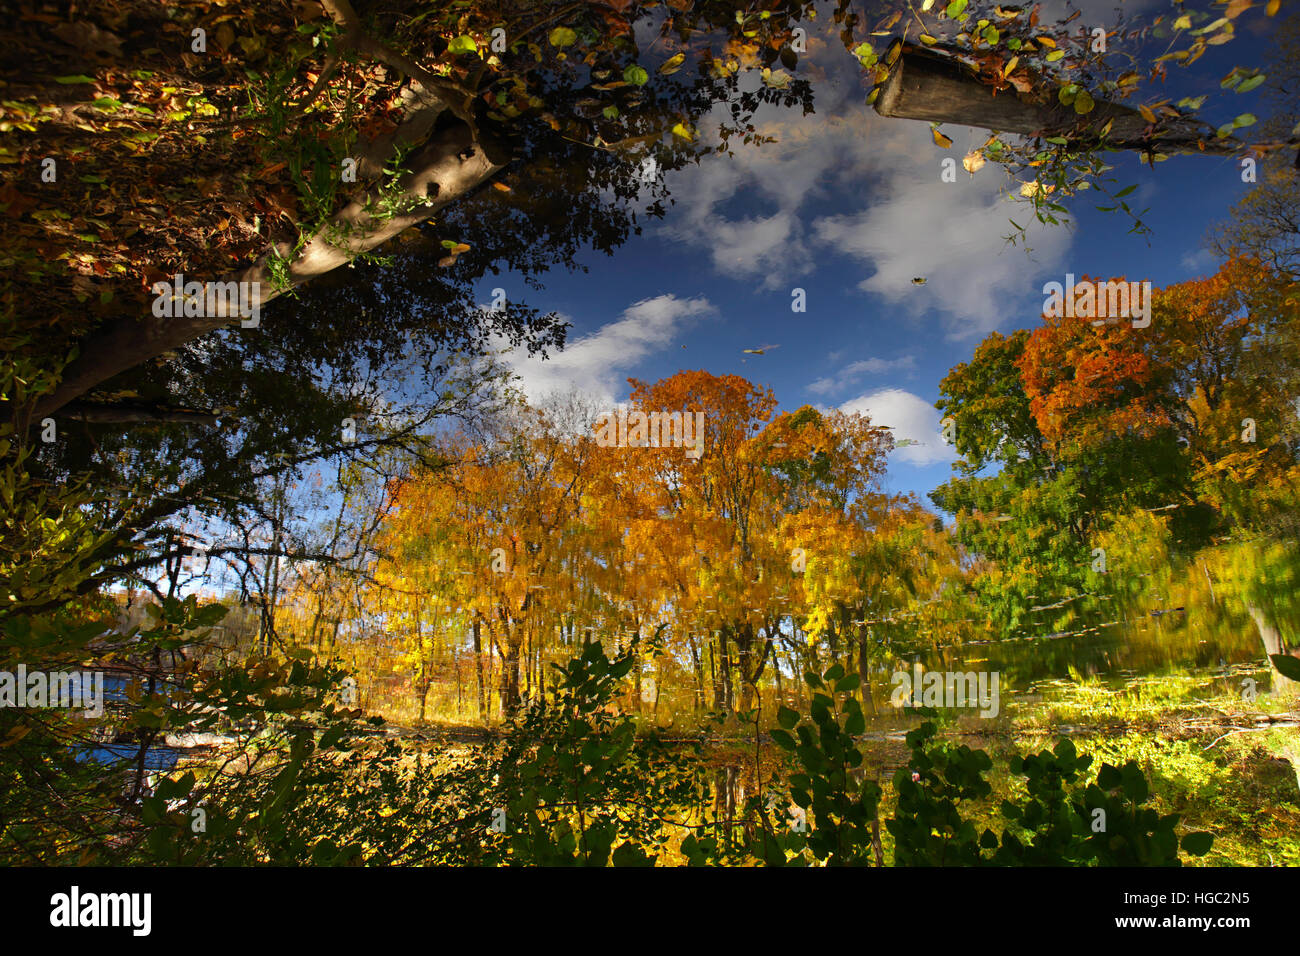 Inverted colorful art abstract reflection of autumn trees in a pond - Stock Image